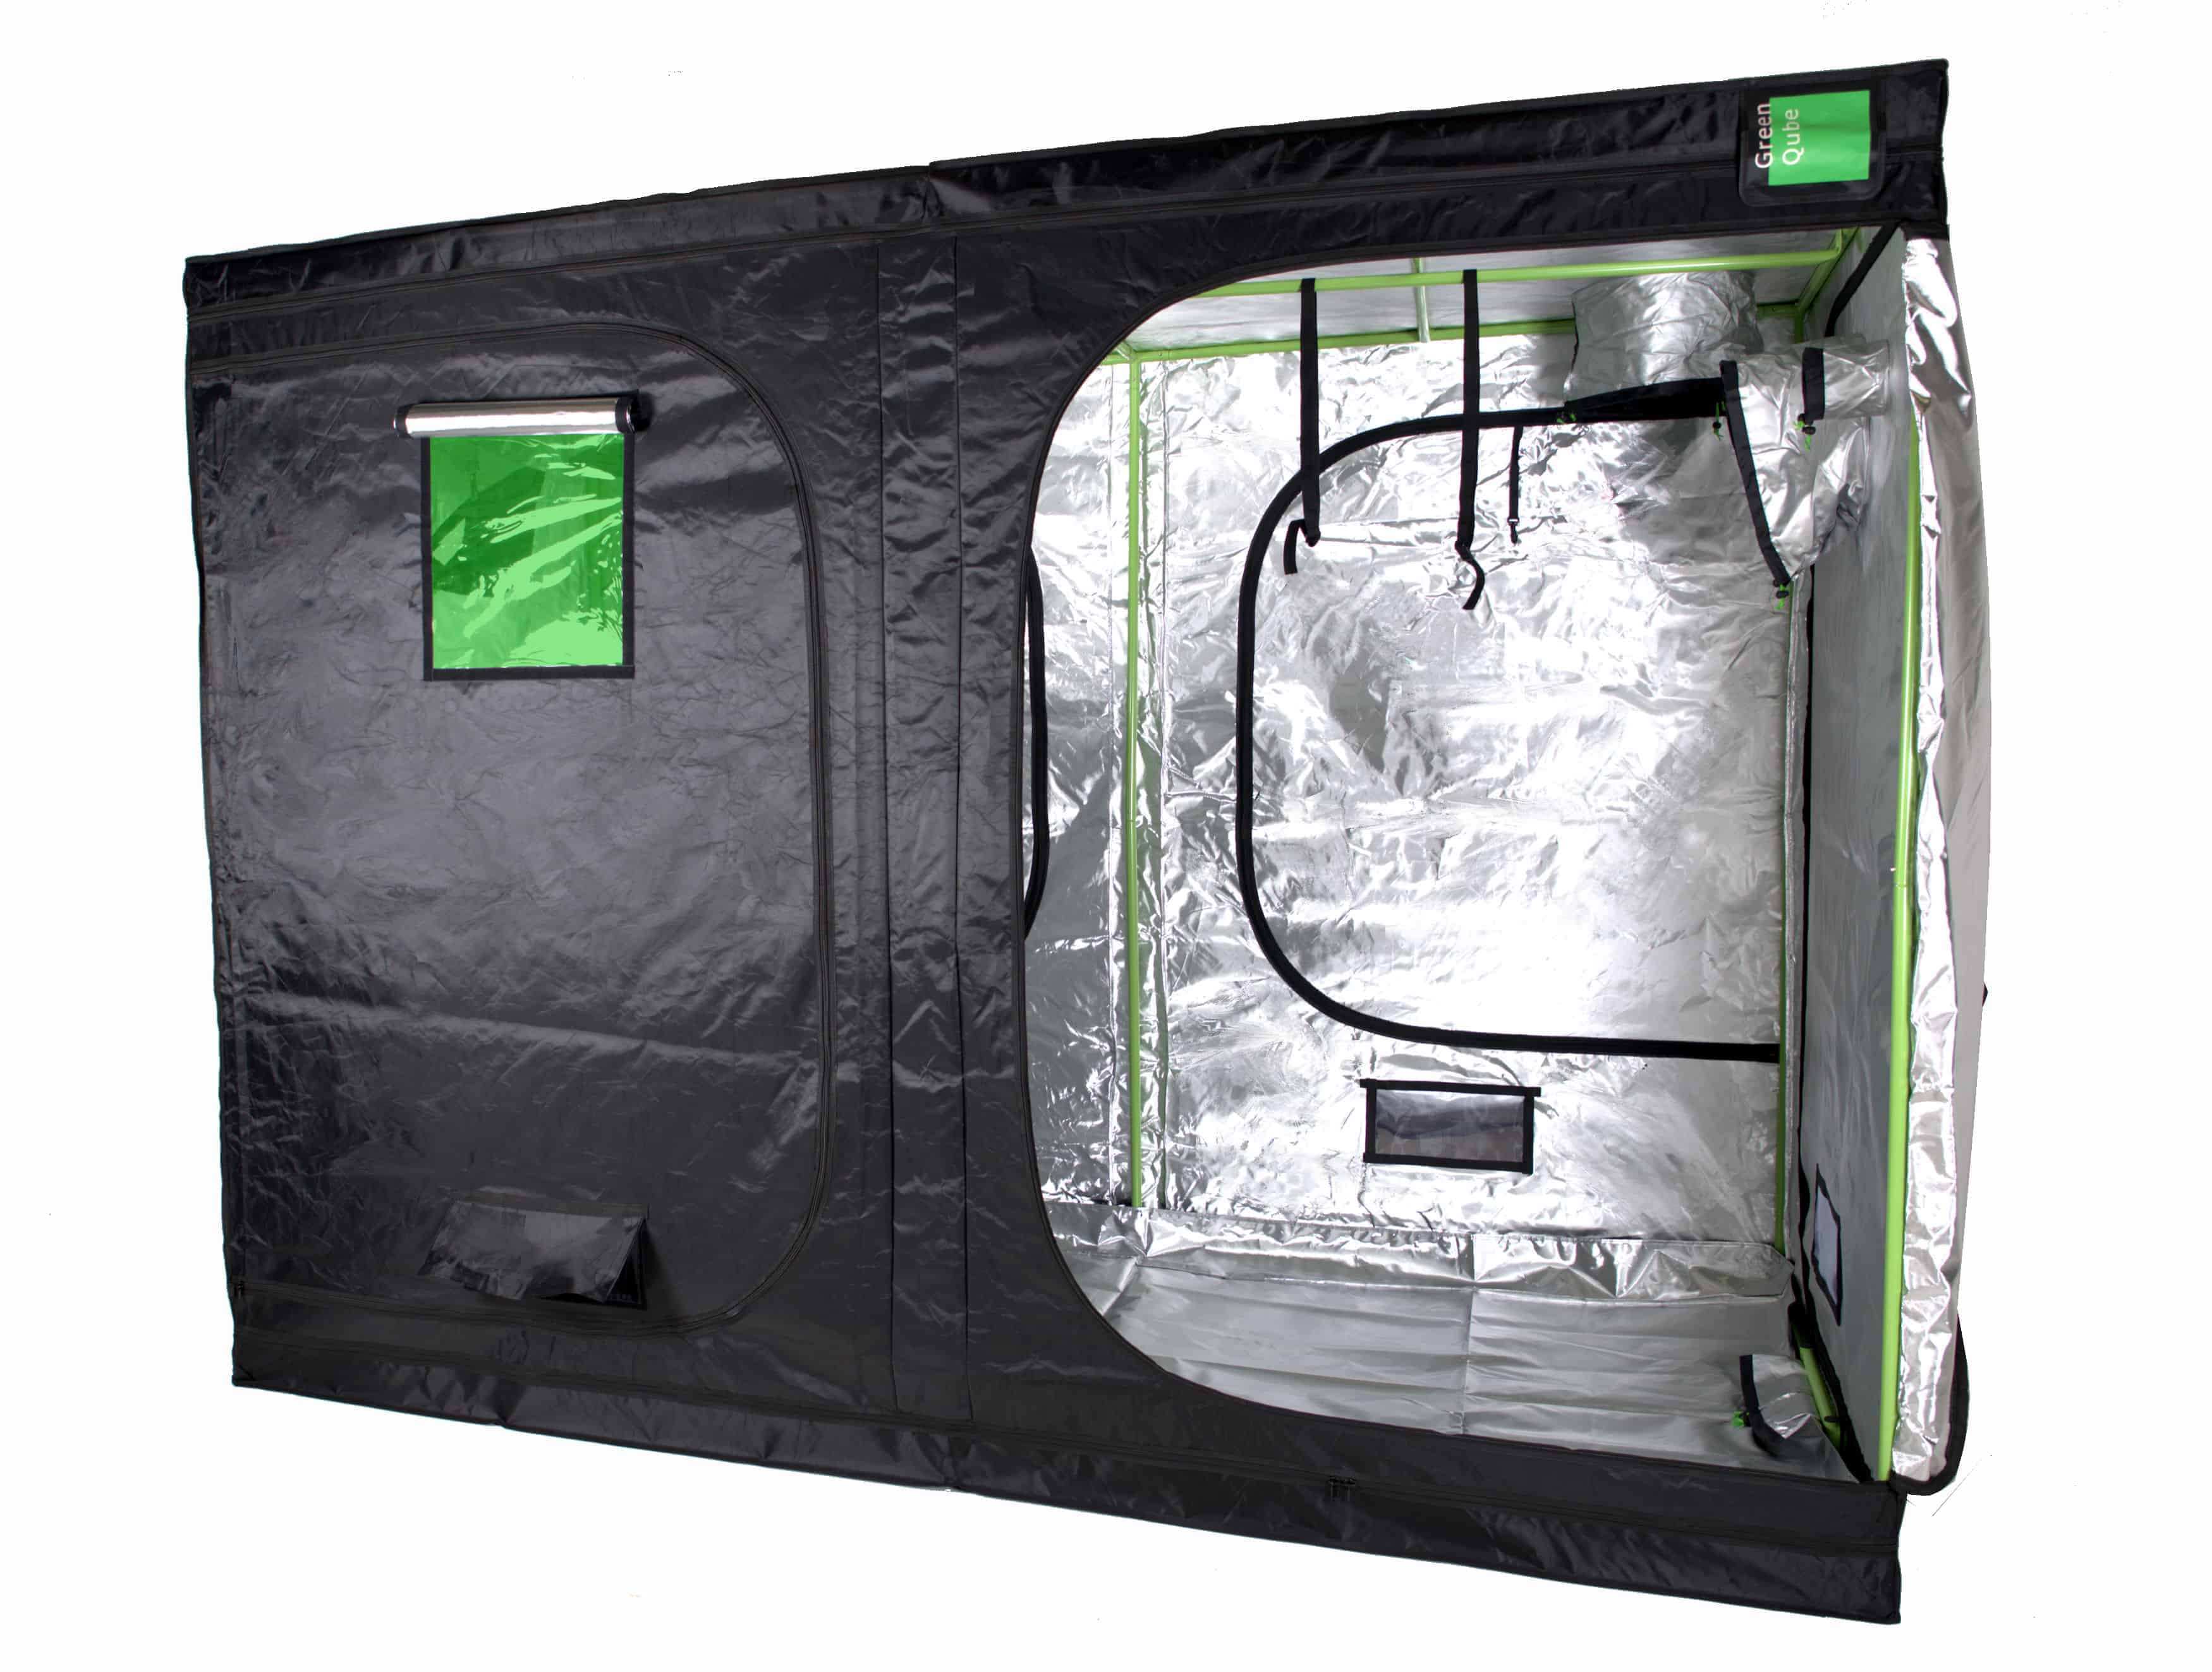 Green Qube 2030 grow room